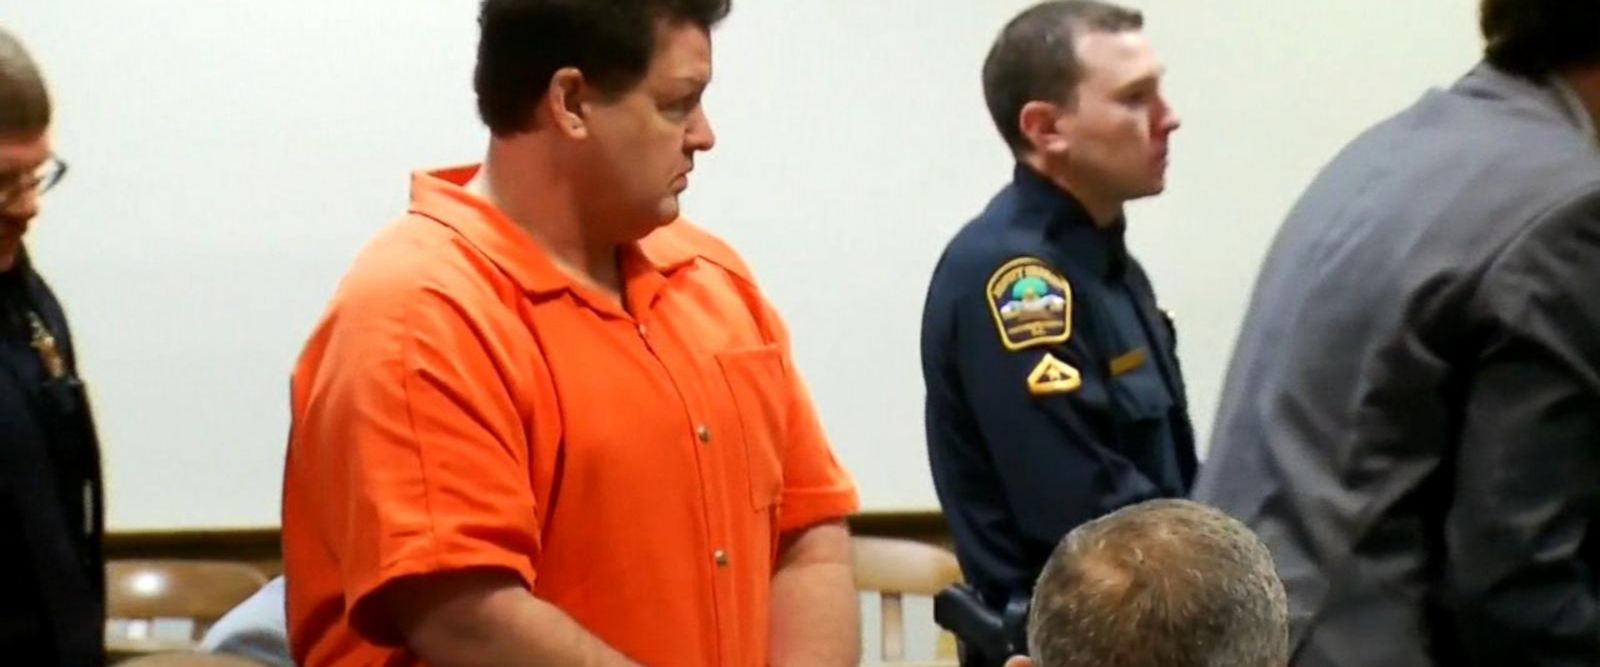 Todd Kohlhepp pleaded guilty in exchange for serving seven consecutive life sentences with no chance of parole.